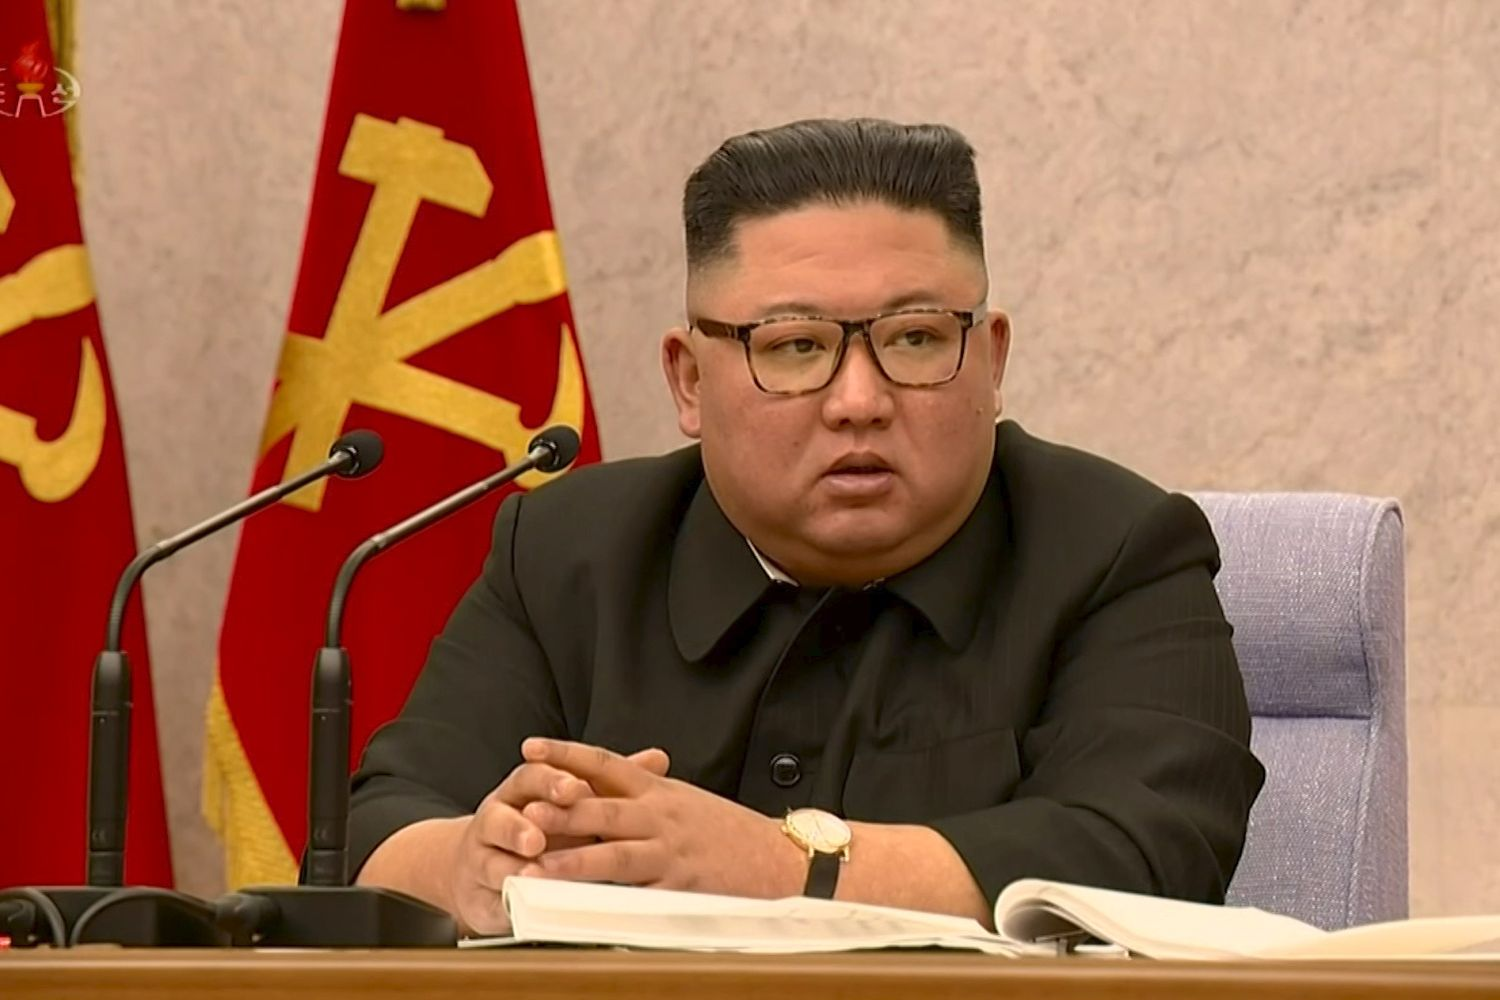 North Korean leader Kim Jong Un speaks at the second plenary meeting of the 8th Central Committee of the Workers' Party in this still image taken from a KRT footage on Feb 12 this year. (KRT TV via Reuters)